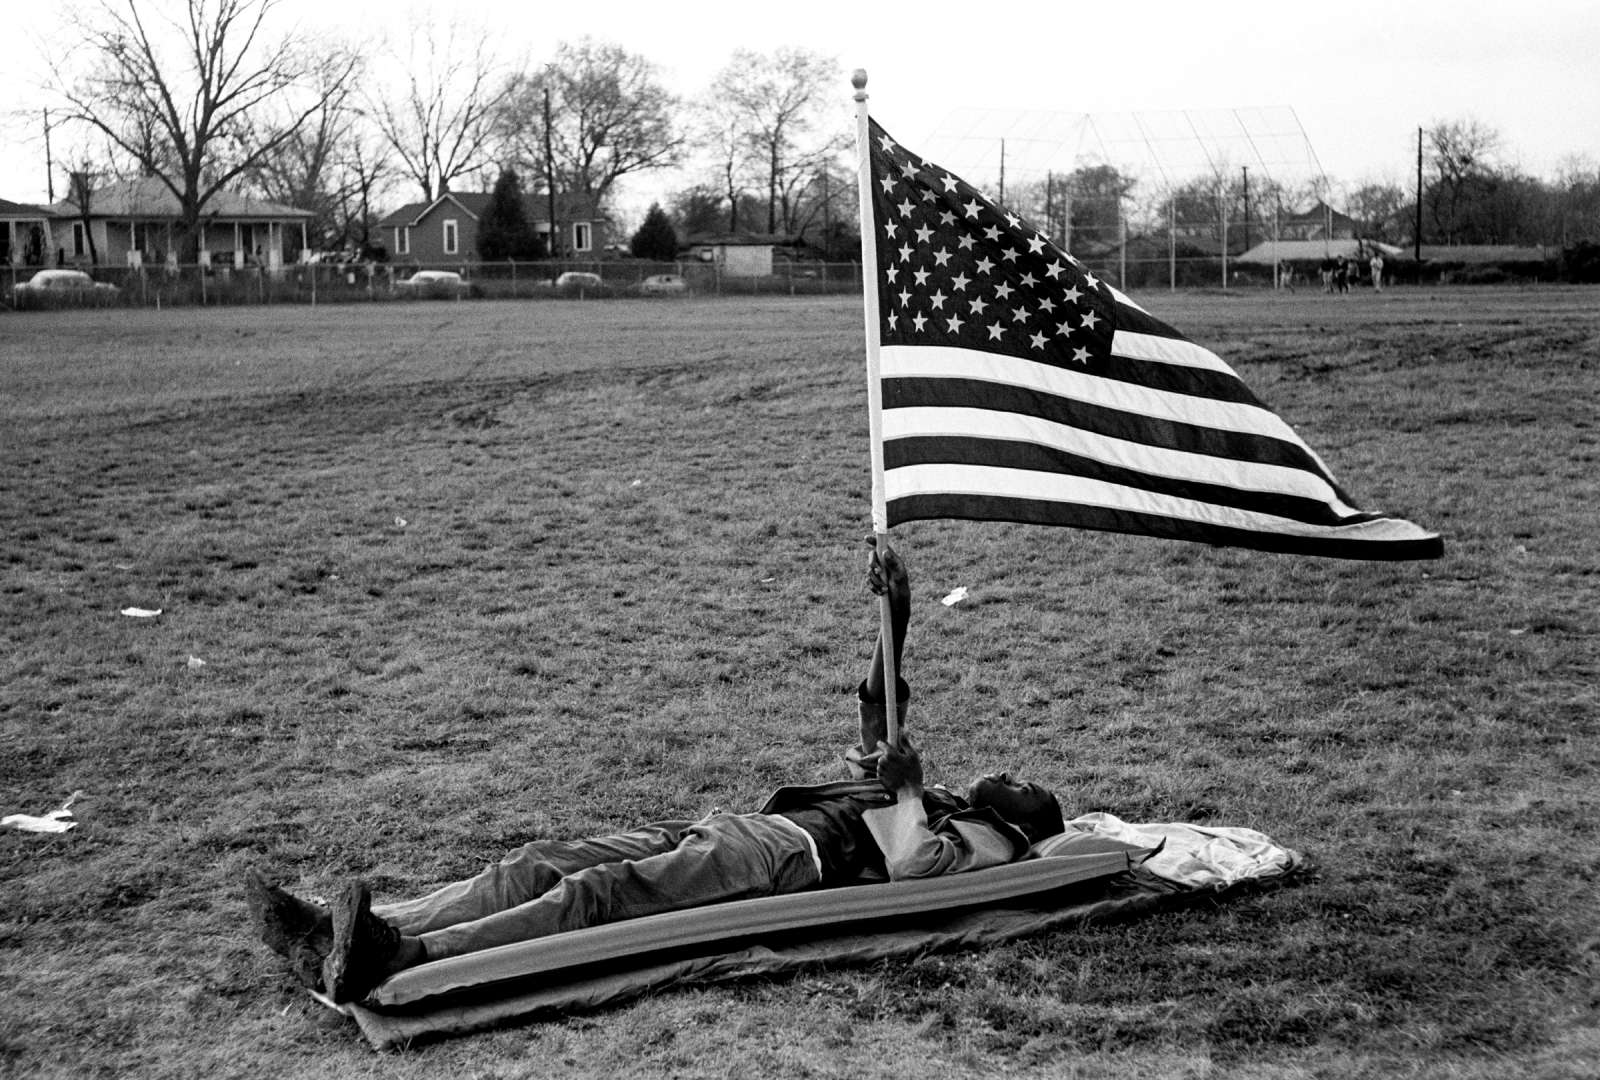 Boy With the Flag on Ground, 1965